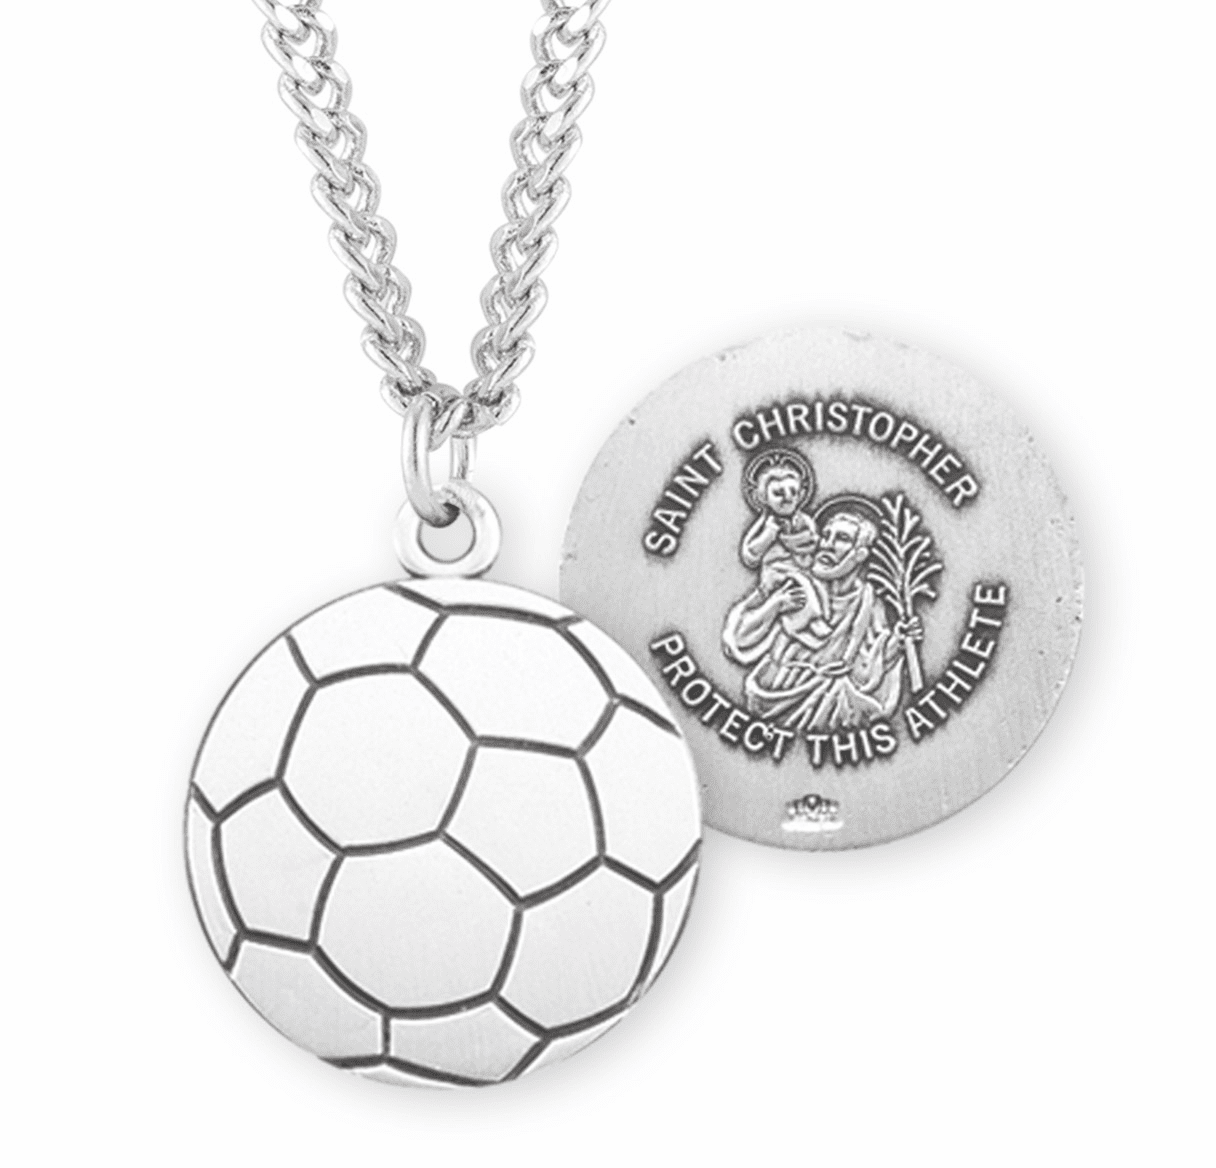 HMH Religious Sterling Silver St Christopher Soccer Ball Necklace